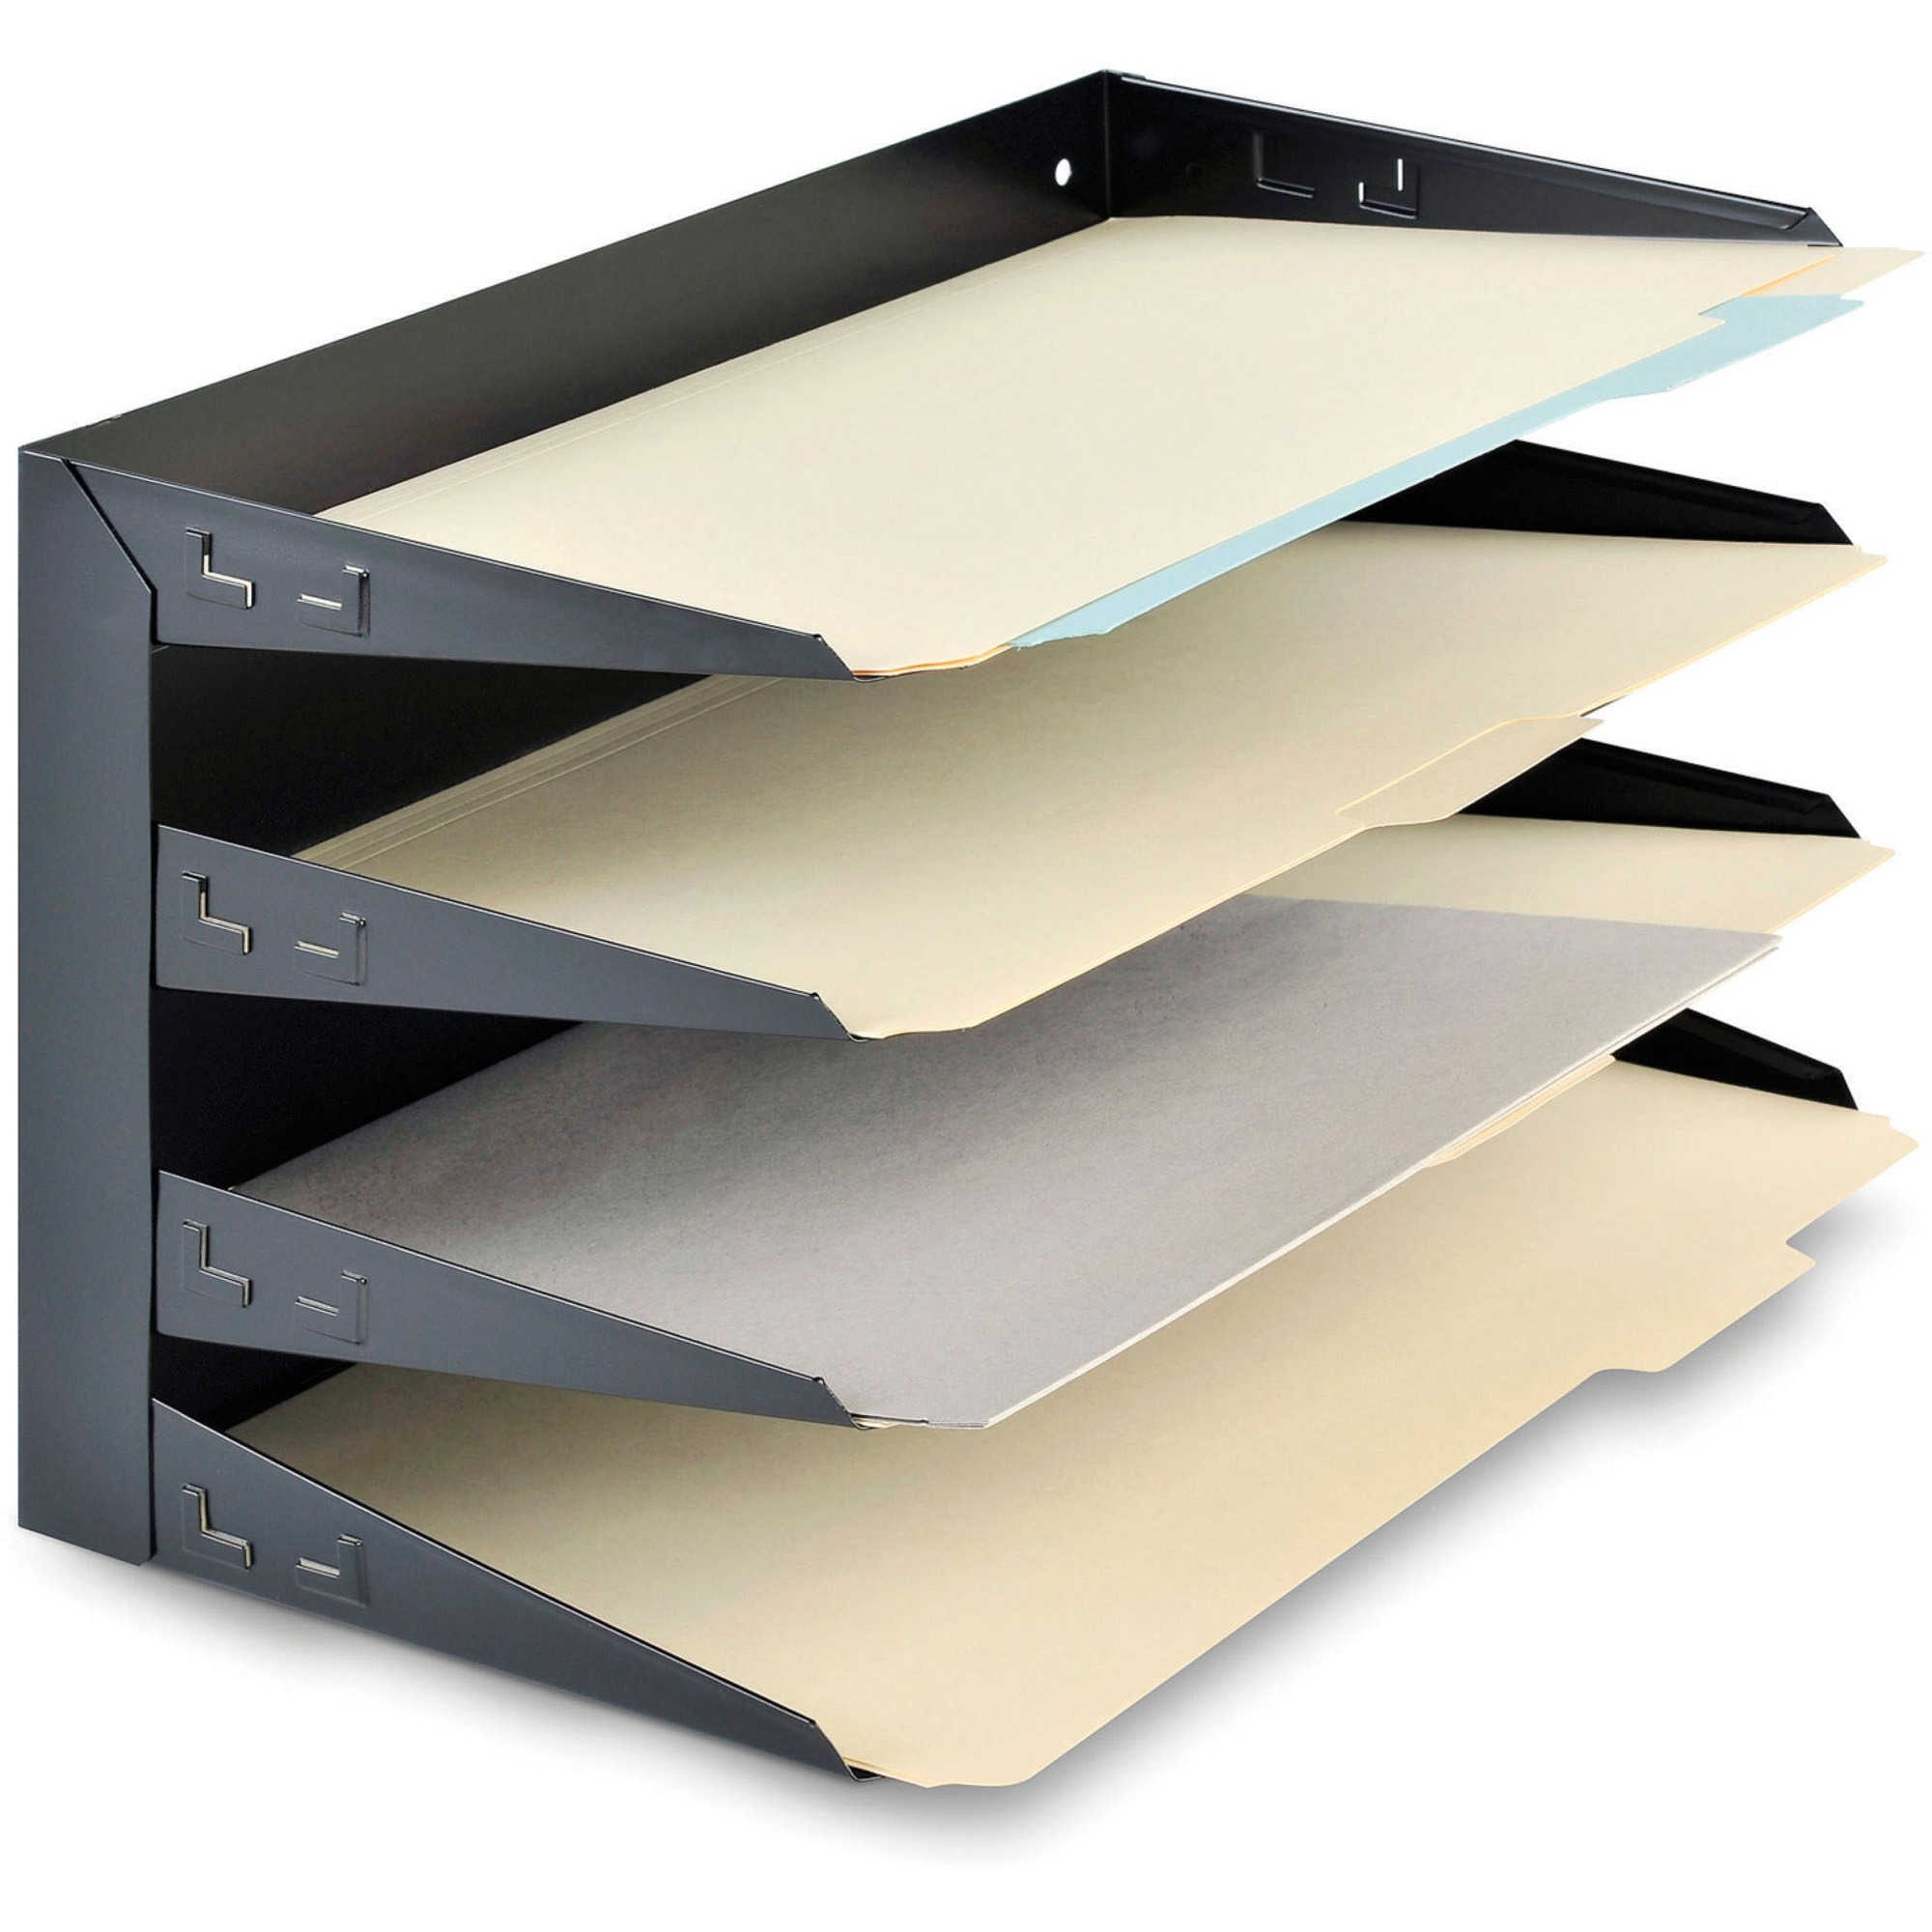 Mmf Horizontal Desk File Trays 4 Compartment S Tier 9 3 Height X 15 Width 8 Depth Desktop Wall Mountable Partition